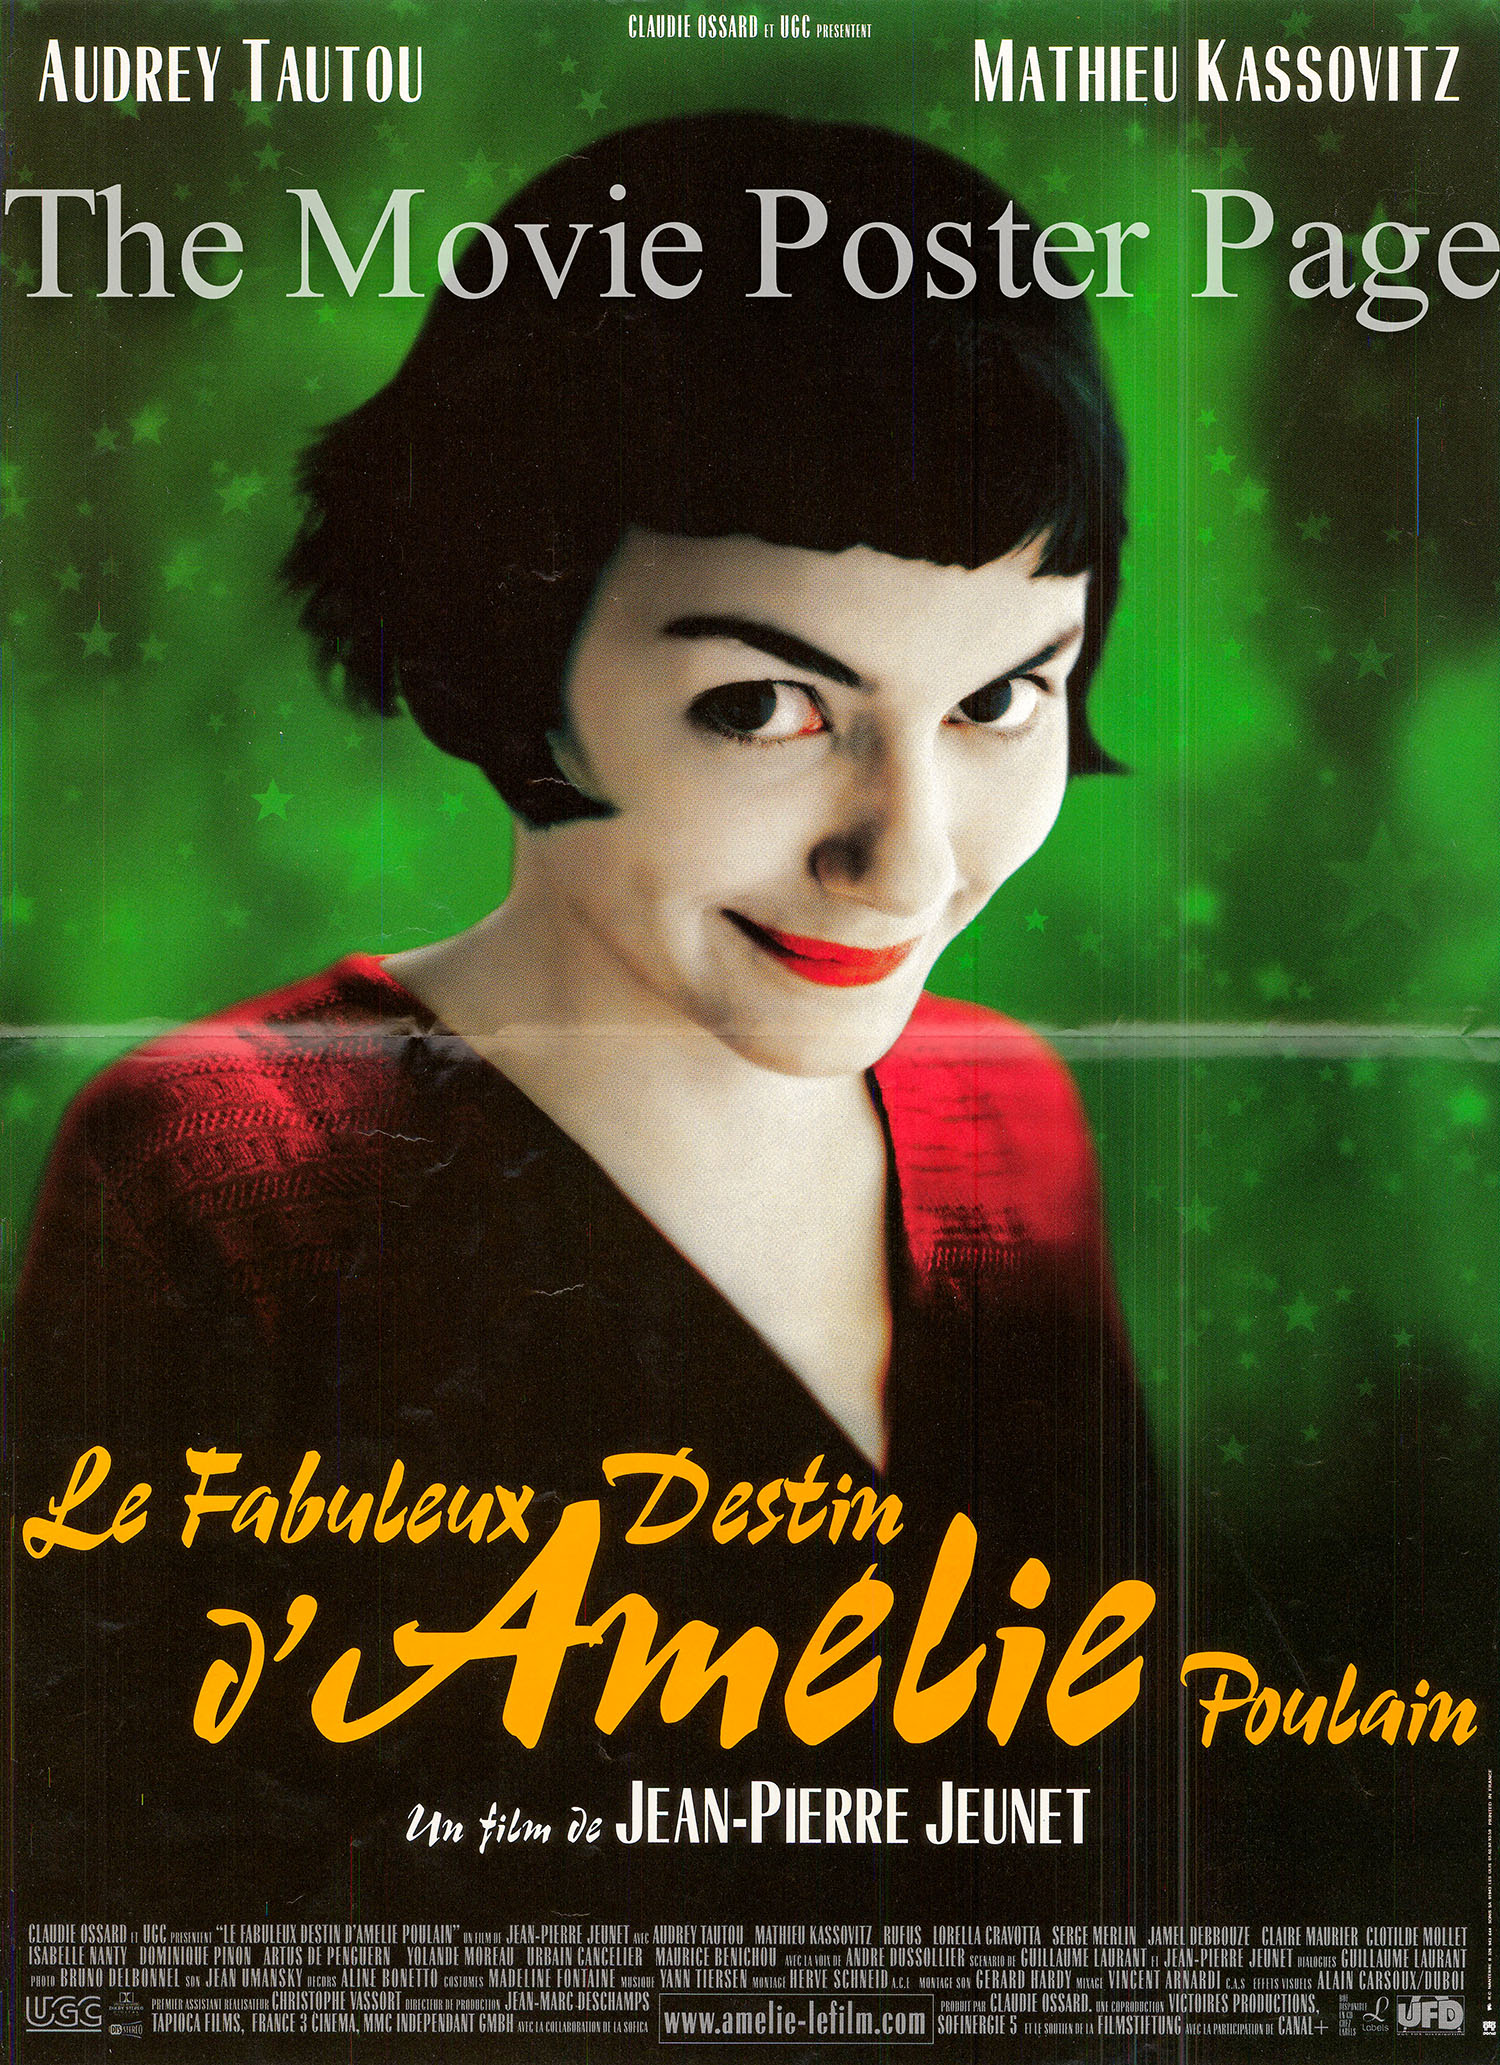 P:ctured is a French mini promotional poster for the 2001 Jean-Pierre Jeunet film Ameli starring Audrey Tautou.